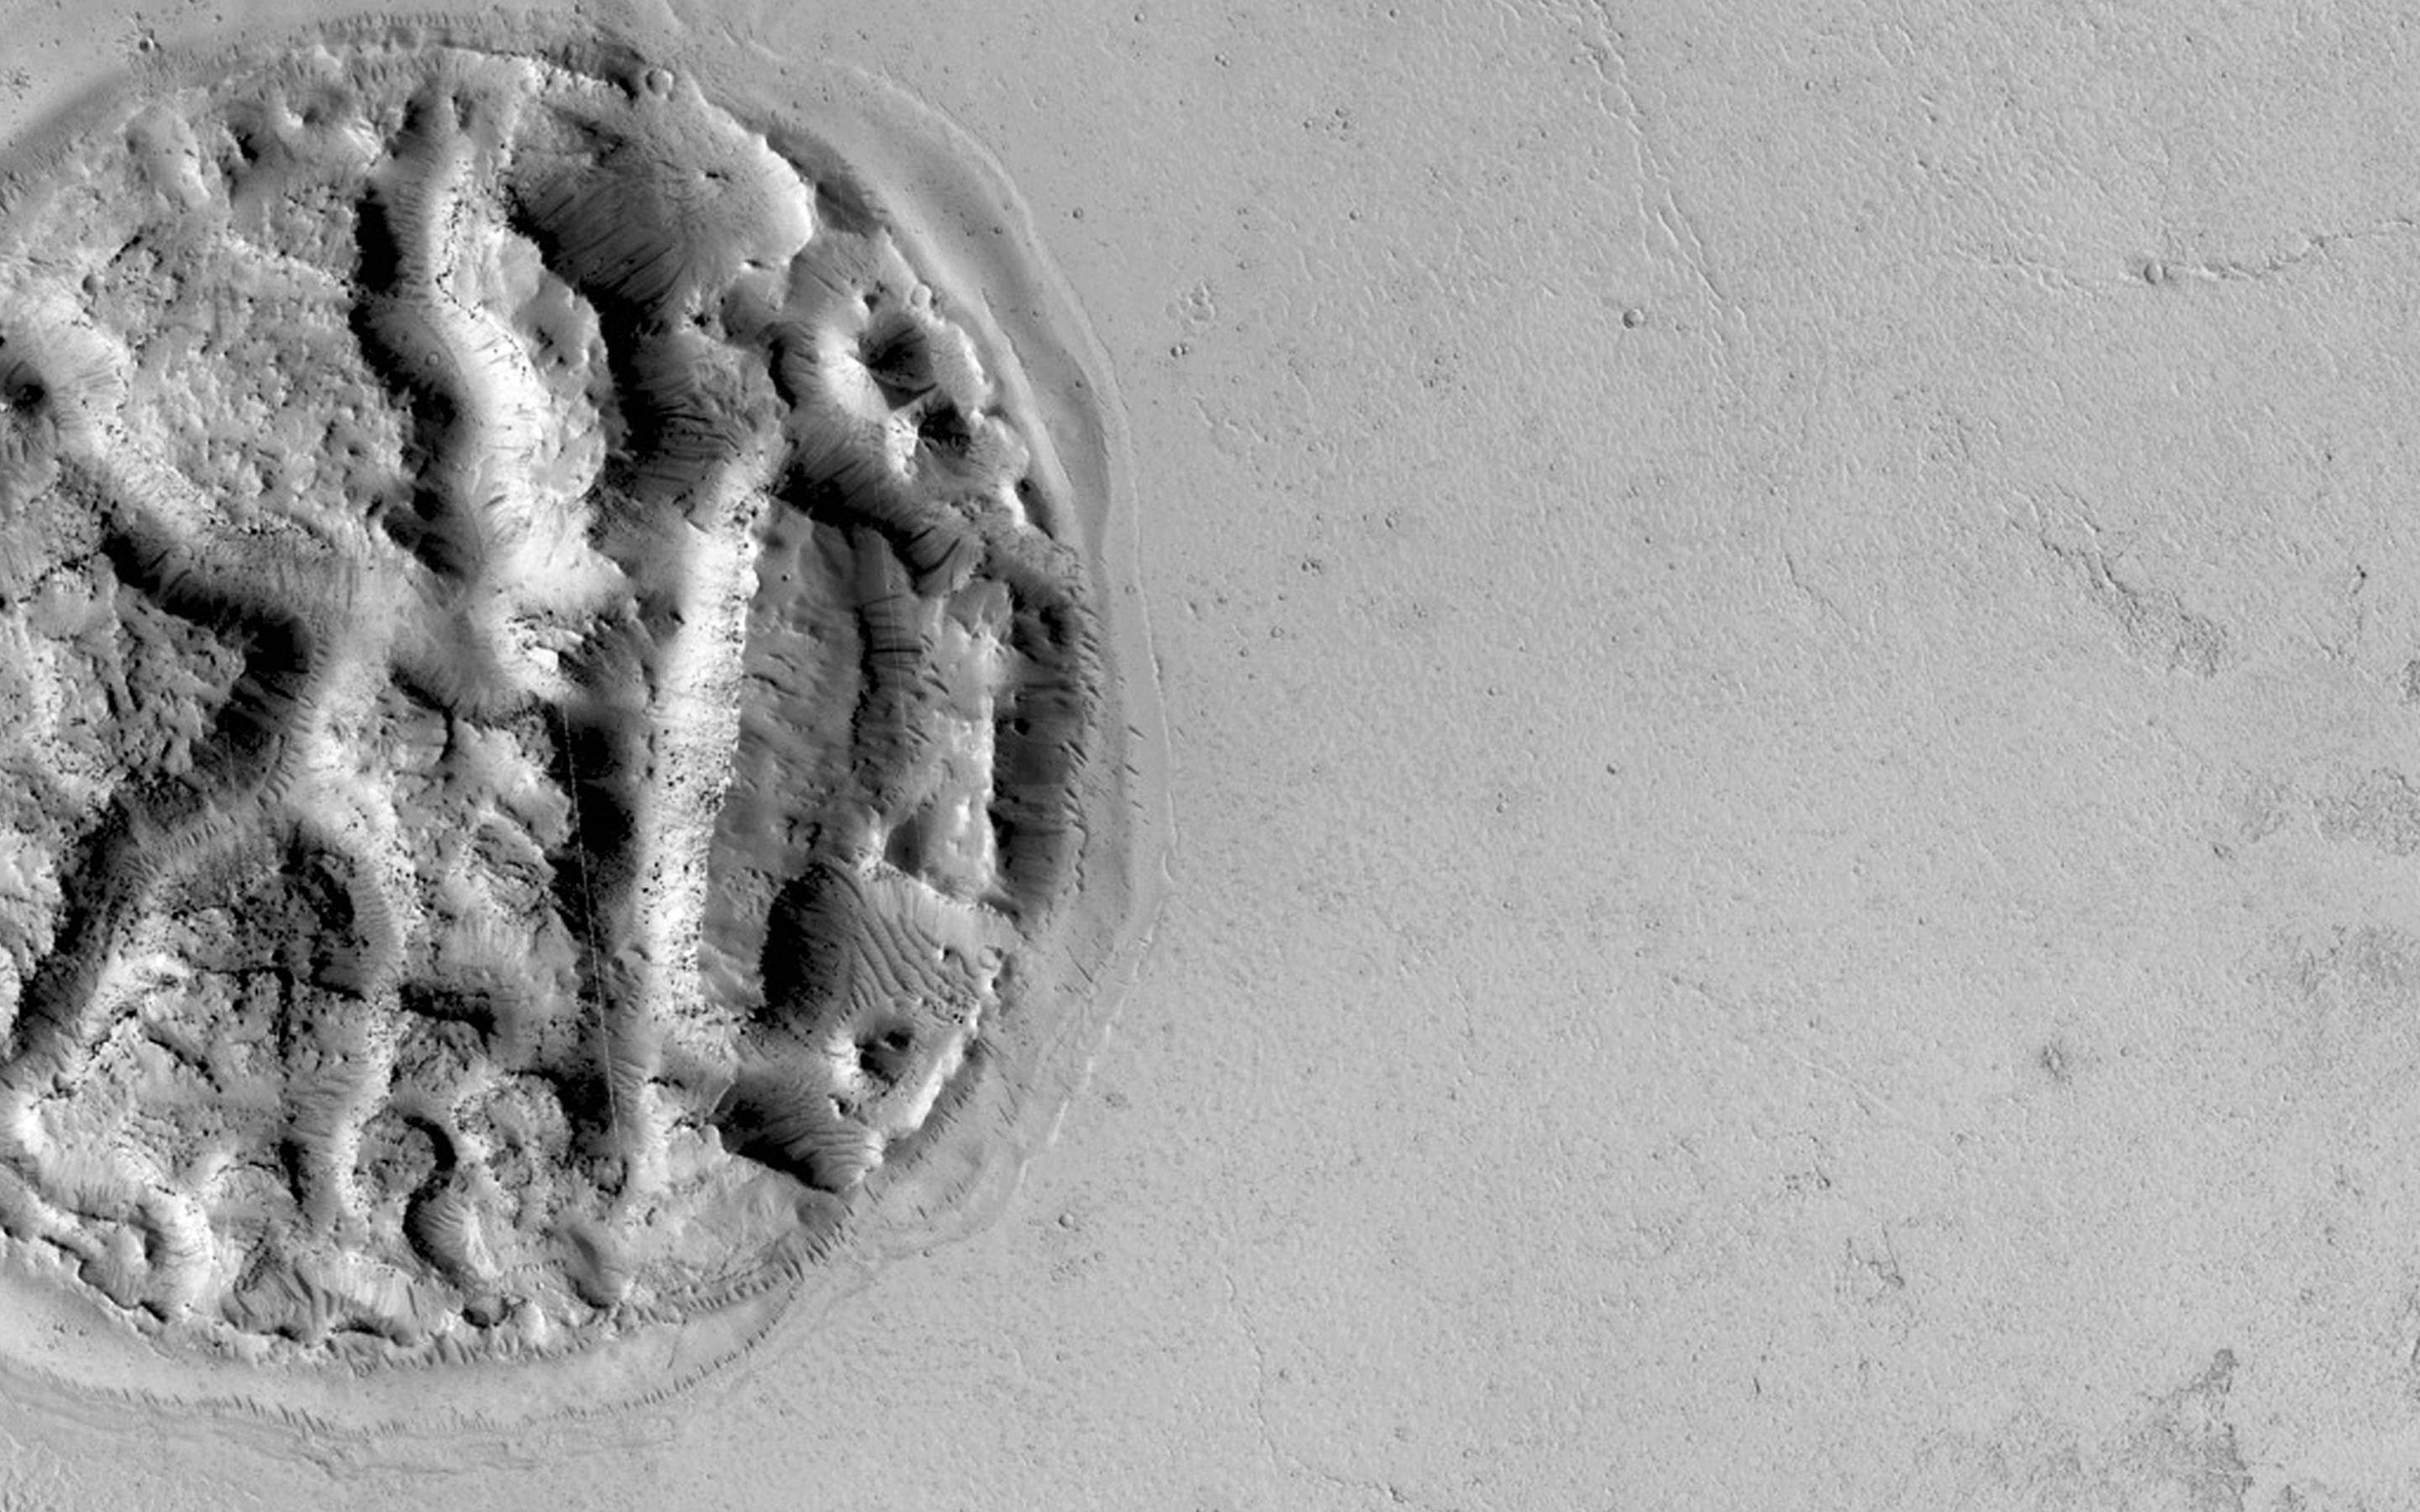 Weird Circular Feature on Mars Looks Like a Giant Pie (Photo)